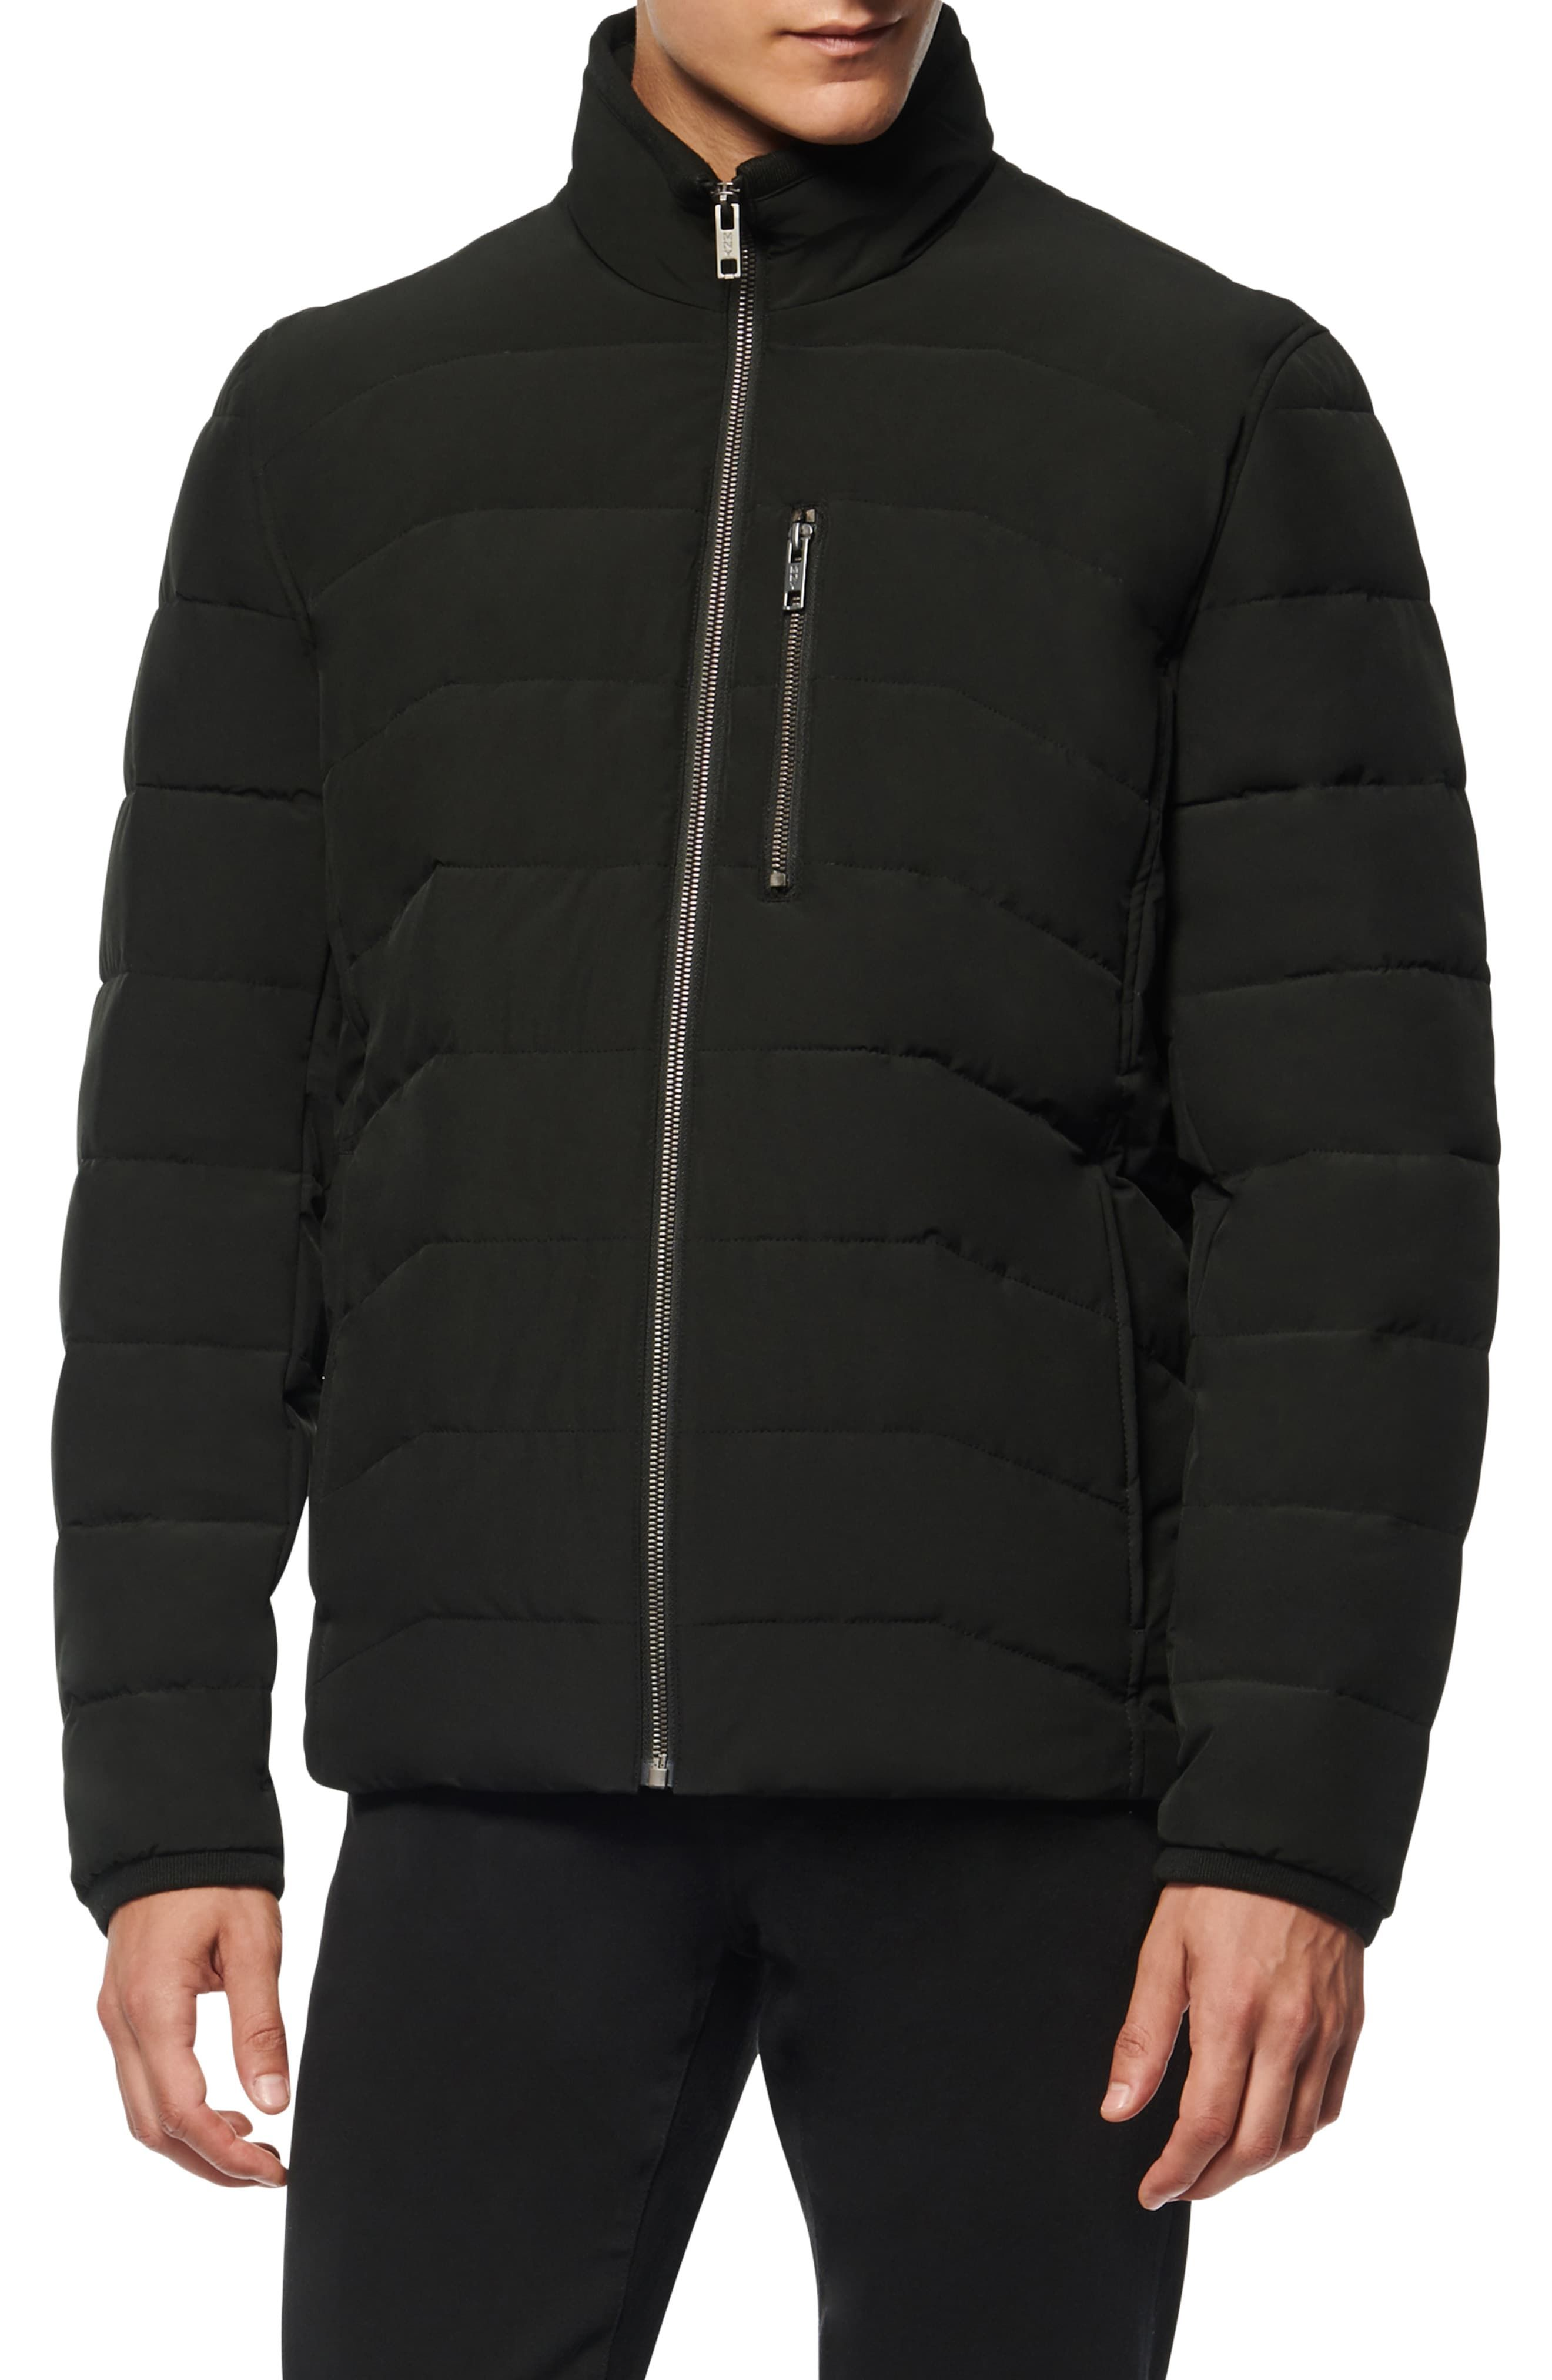 Men S Marc New York Carlisle Water Resistant Quilted Puffer Jacket Size Small Black Quilted Puffer Jacket Marc New York Puffer Jackets [ 4048 x 2640 Pixel ]